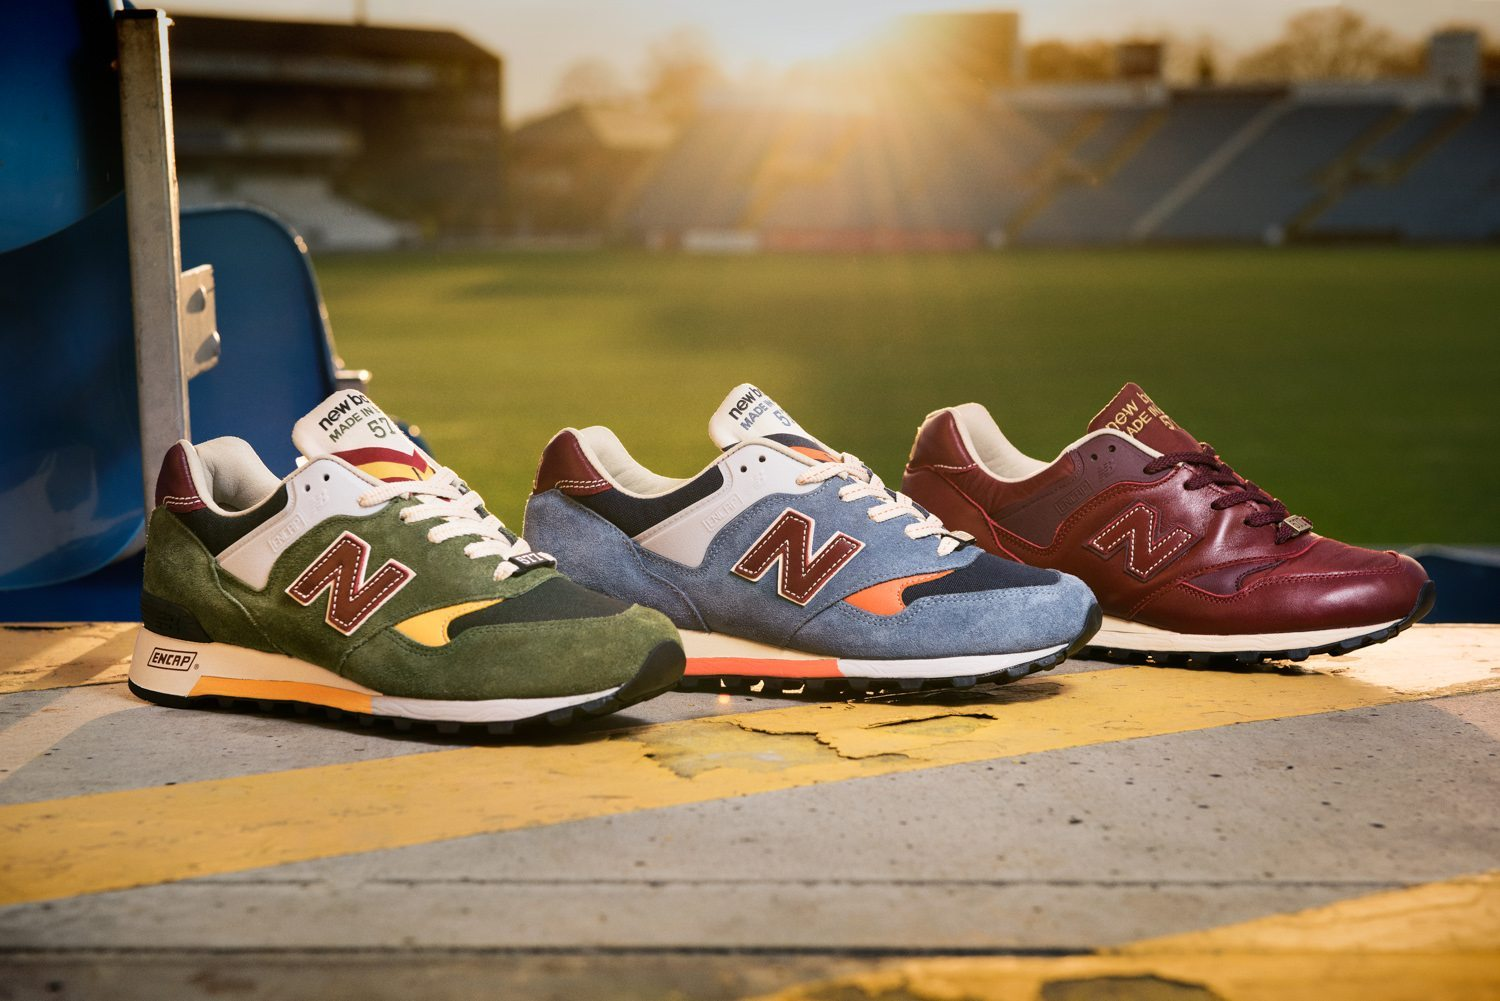 New Balance 577 Test Match Pack 6